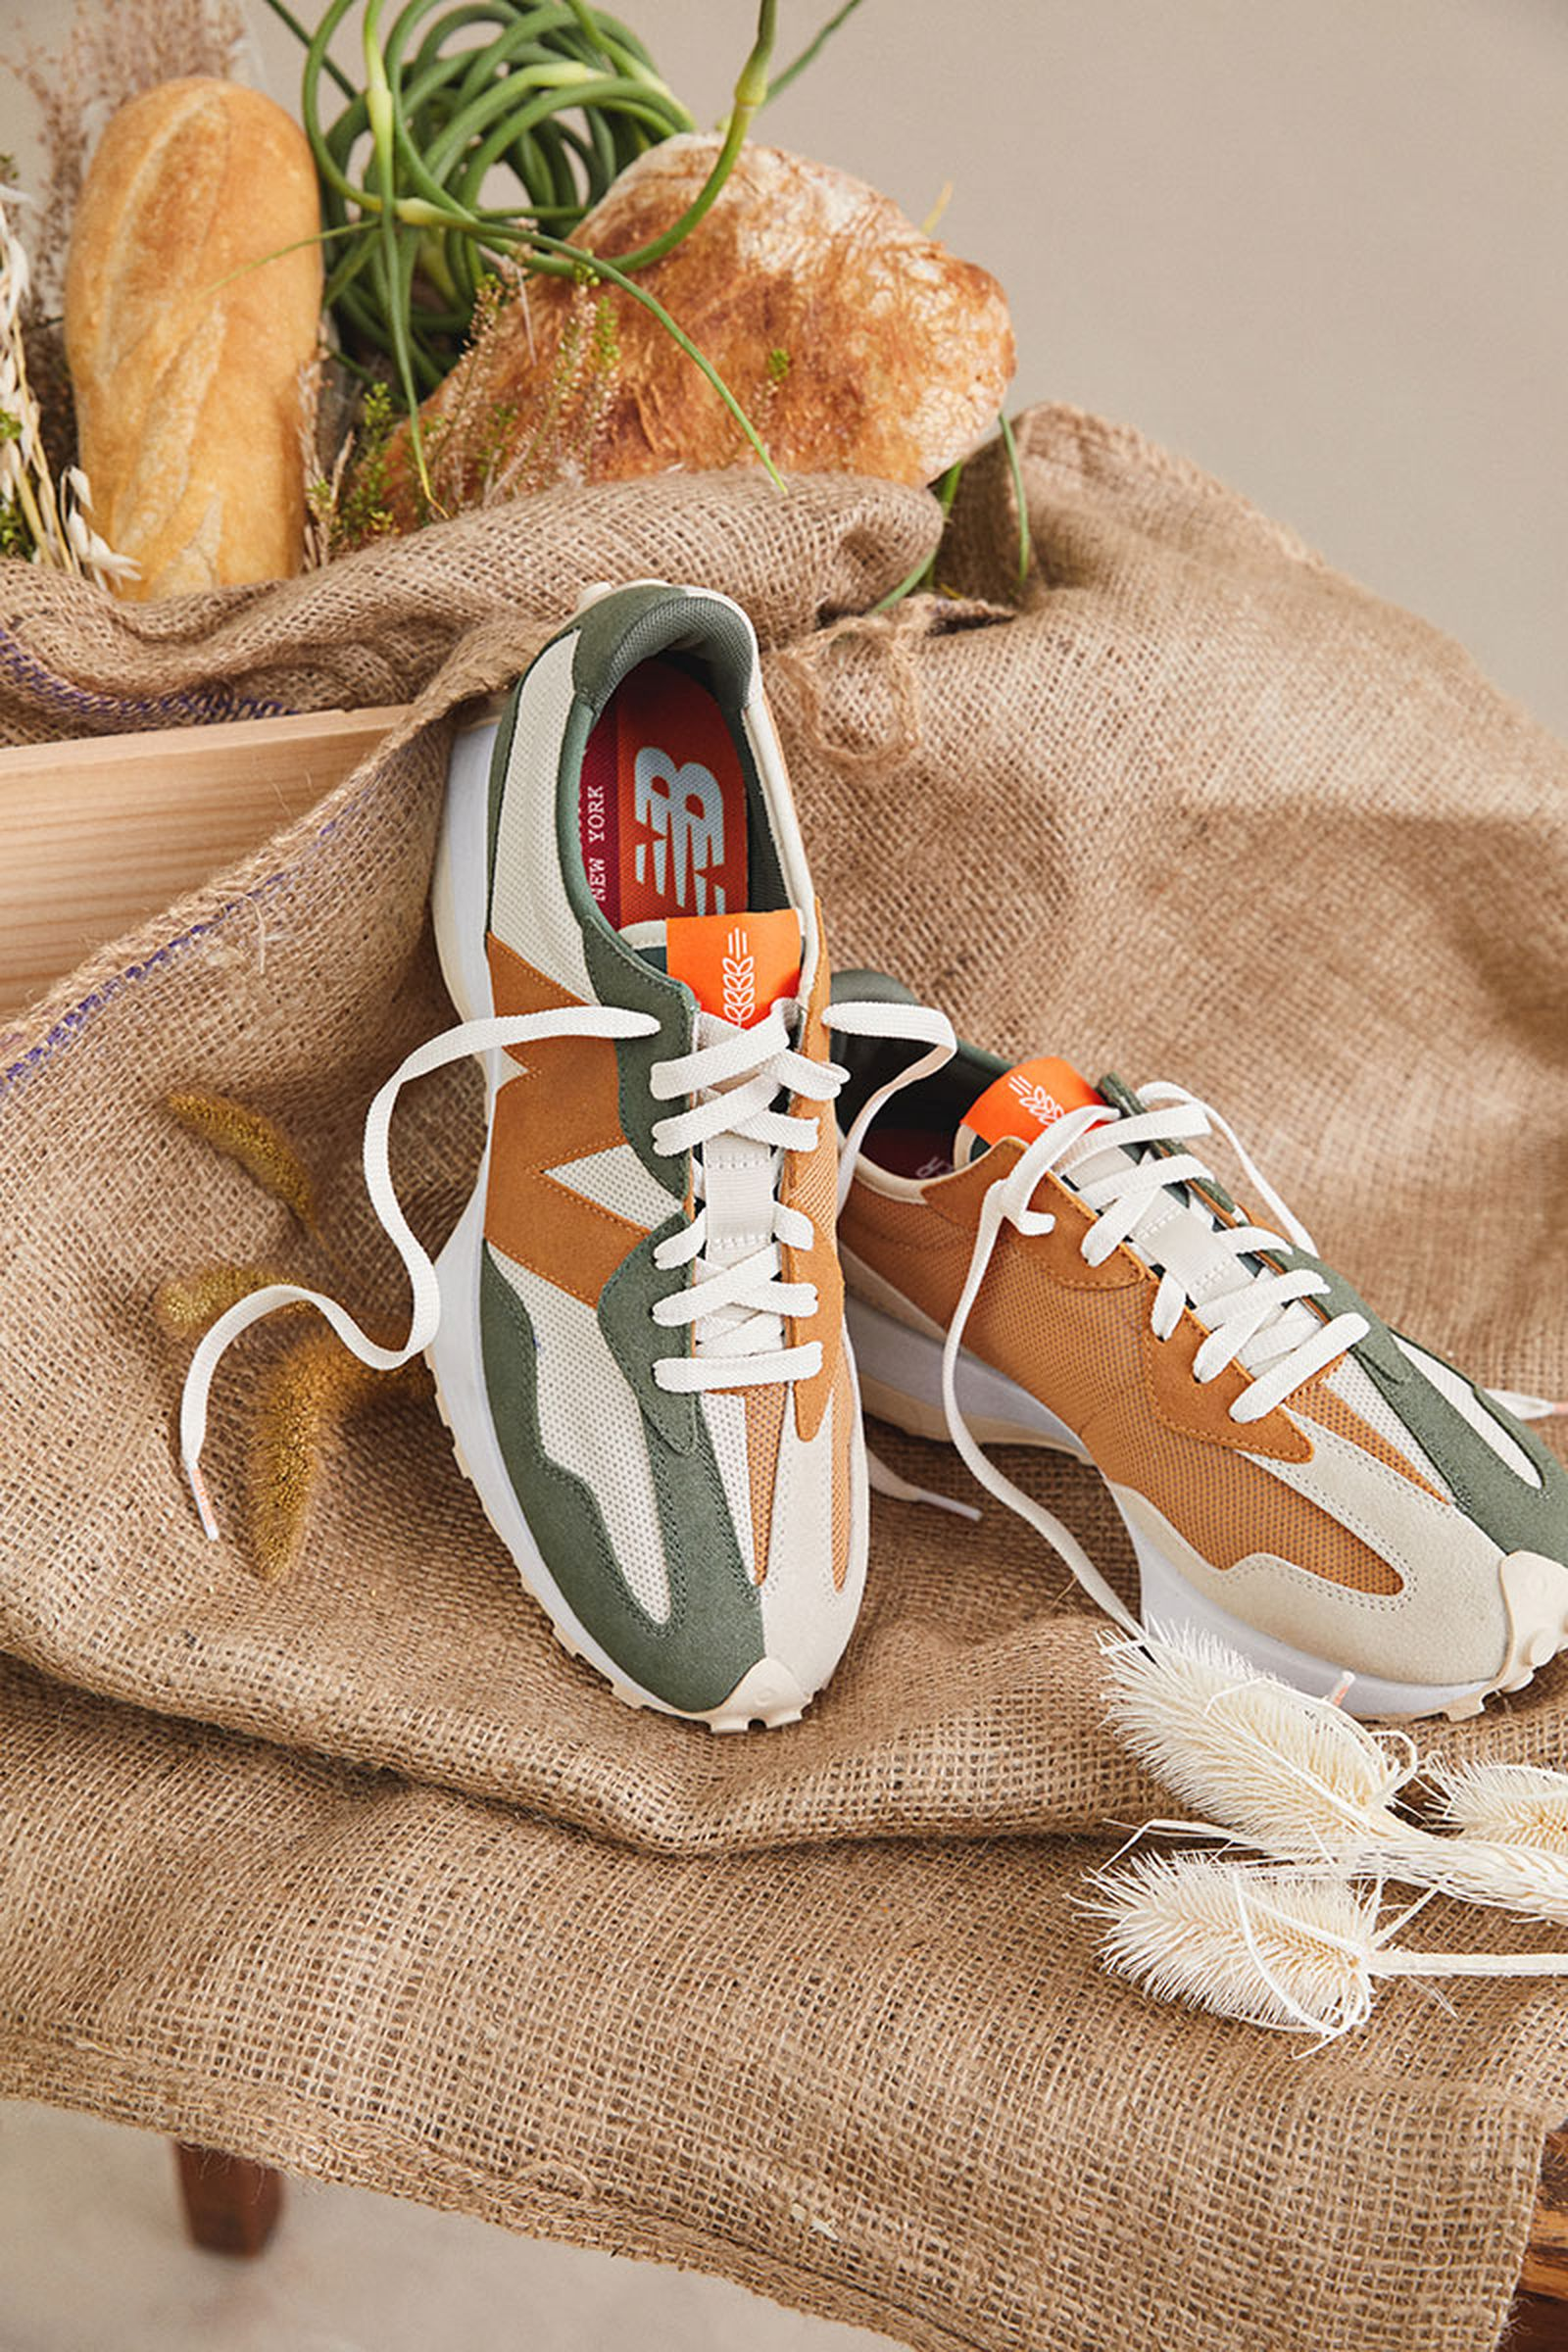 todd-snyder-new-balance-327-farmers-market-release-date-price-02